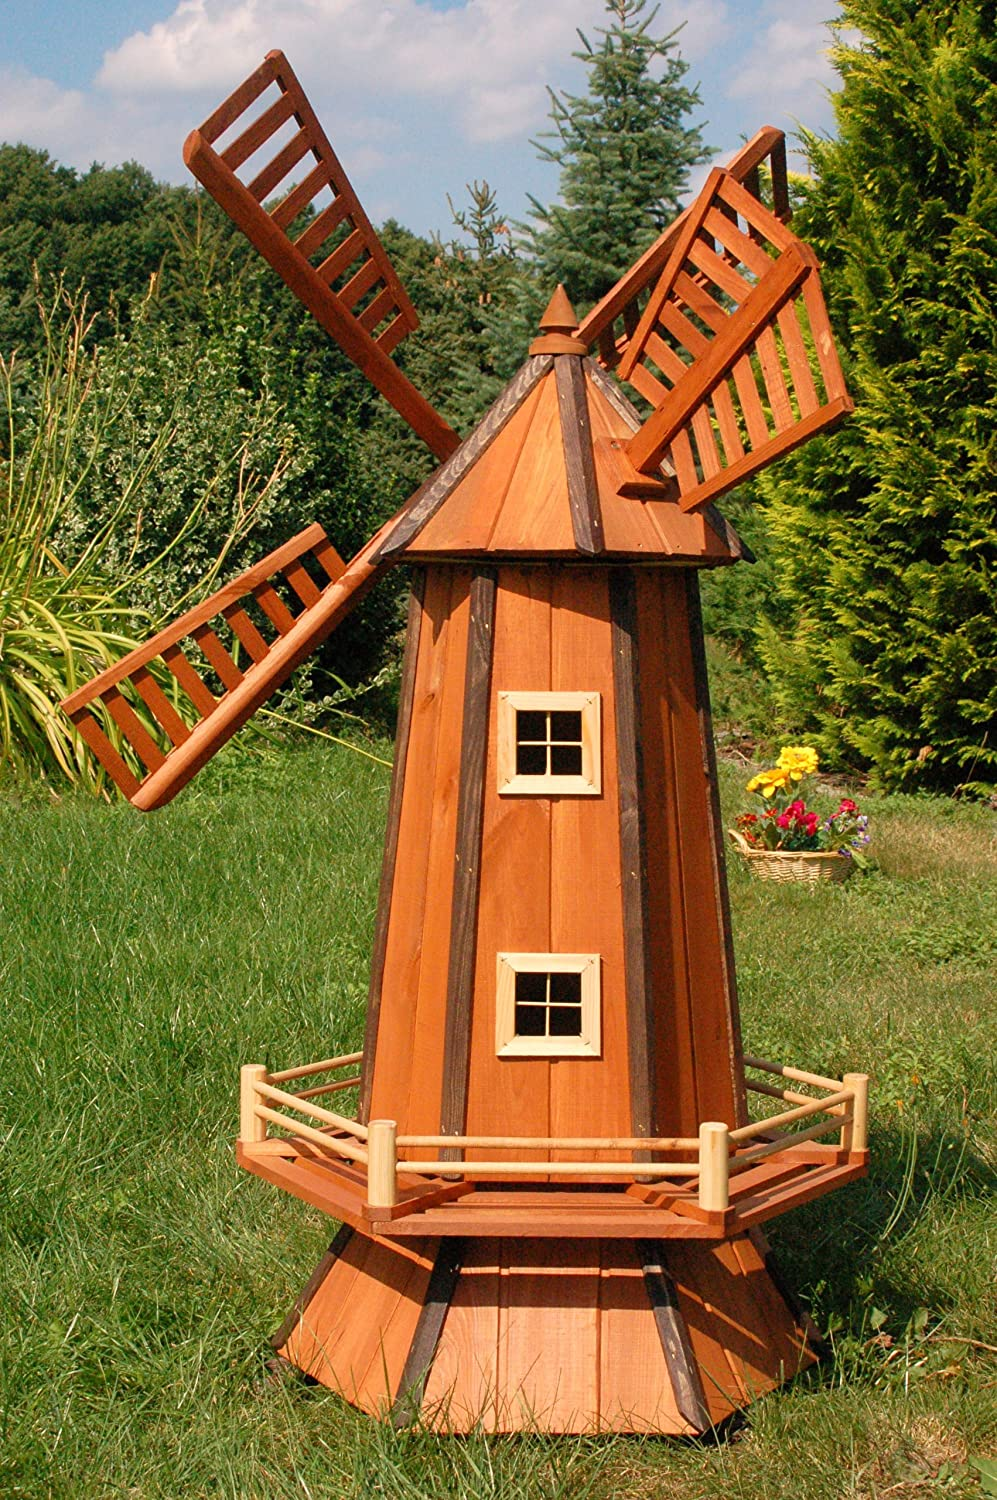 Moulin decoratif exterieur idee with moulin decoratif - Plan moulin a vent en bois pour jardin ...